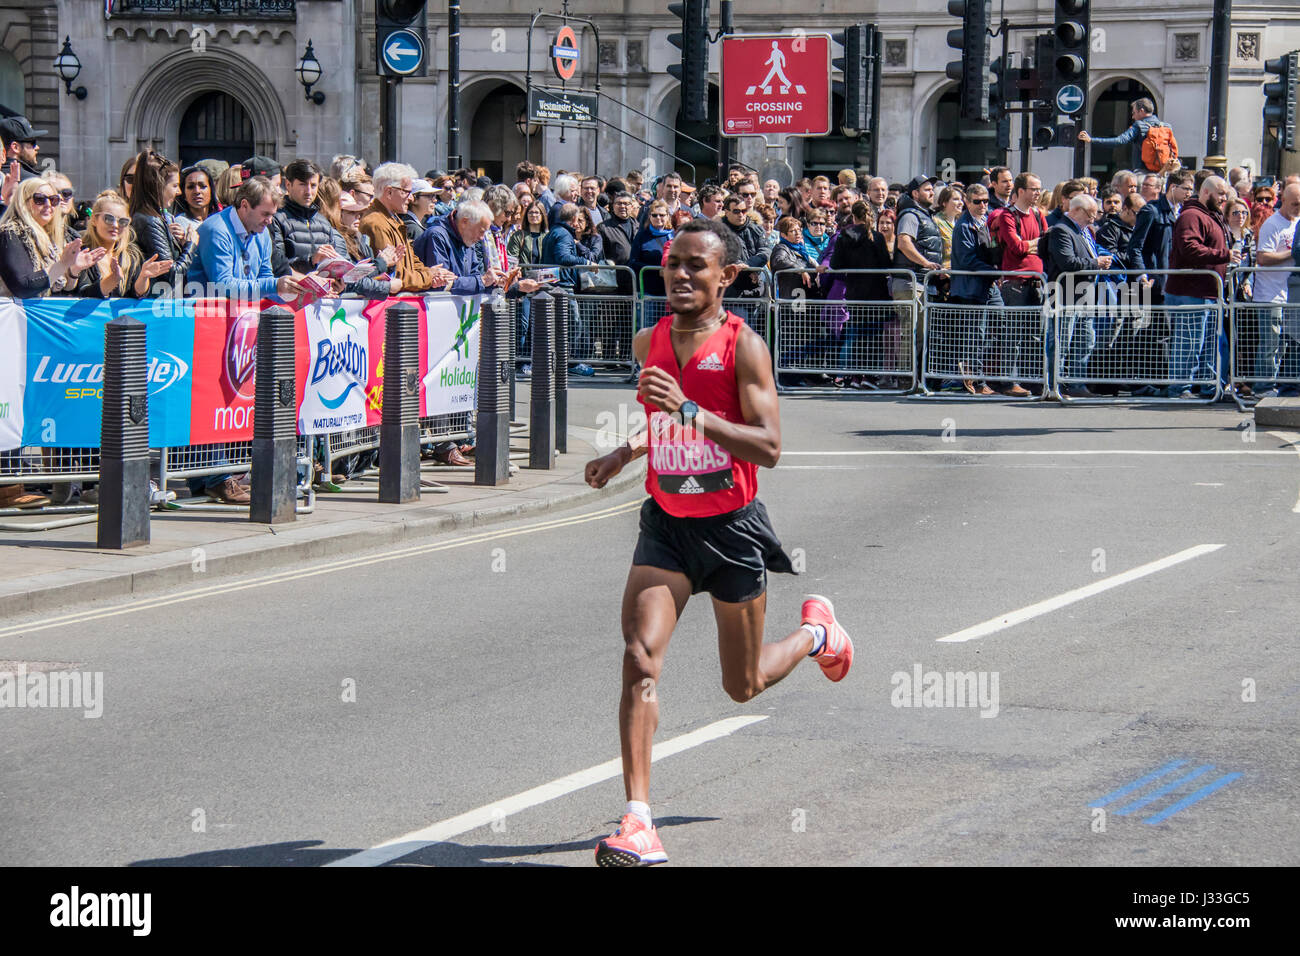 Moogas at the London Marathon 2017 - Stock Image